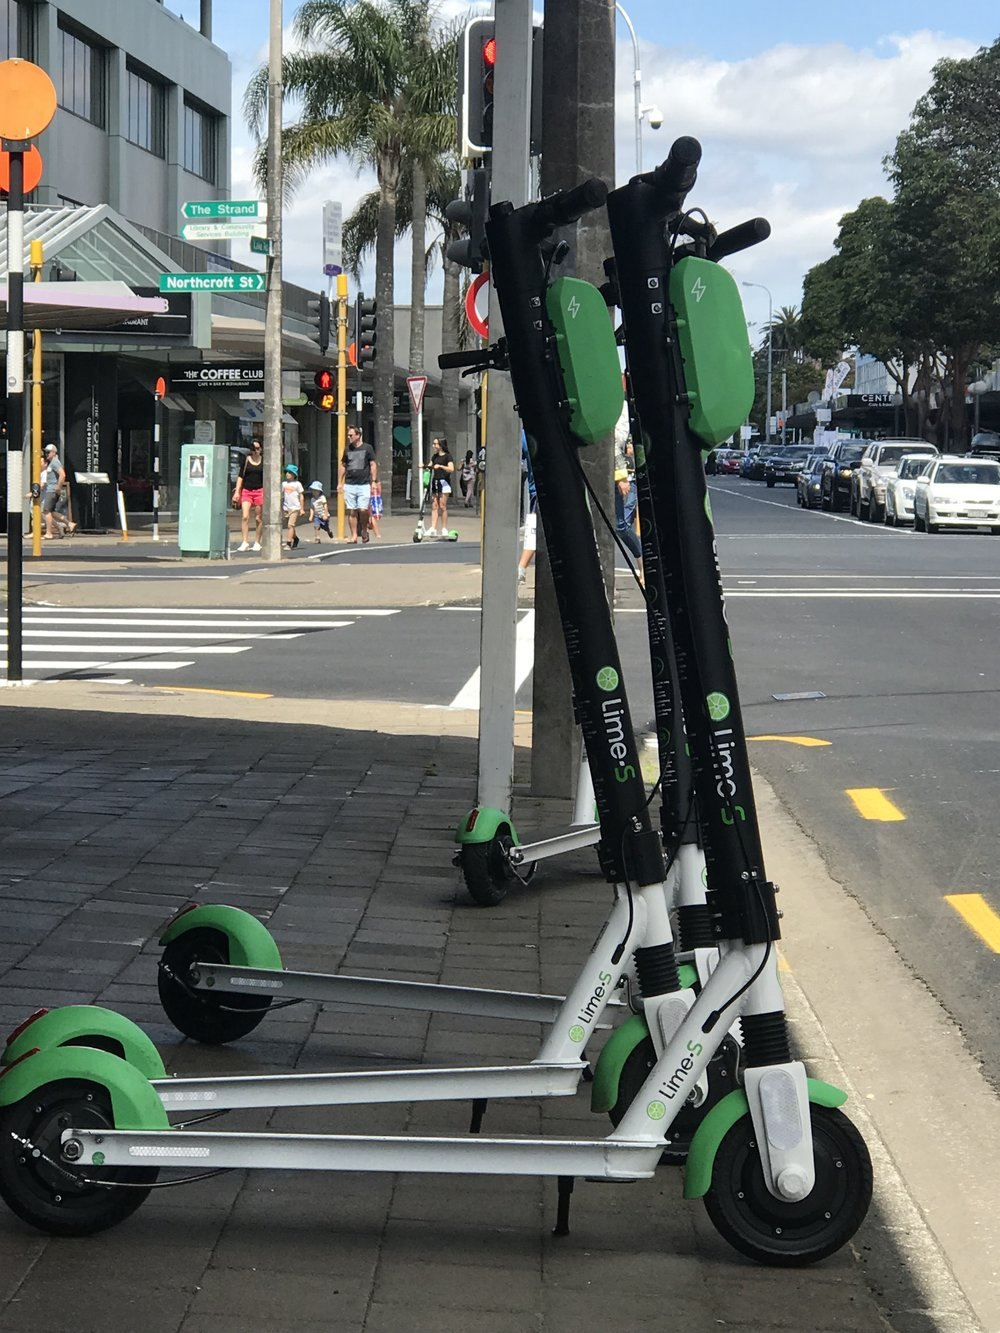 Lime Scooters in Auckland. E-Scooters are technically illegal in New York.